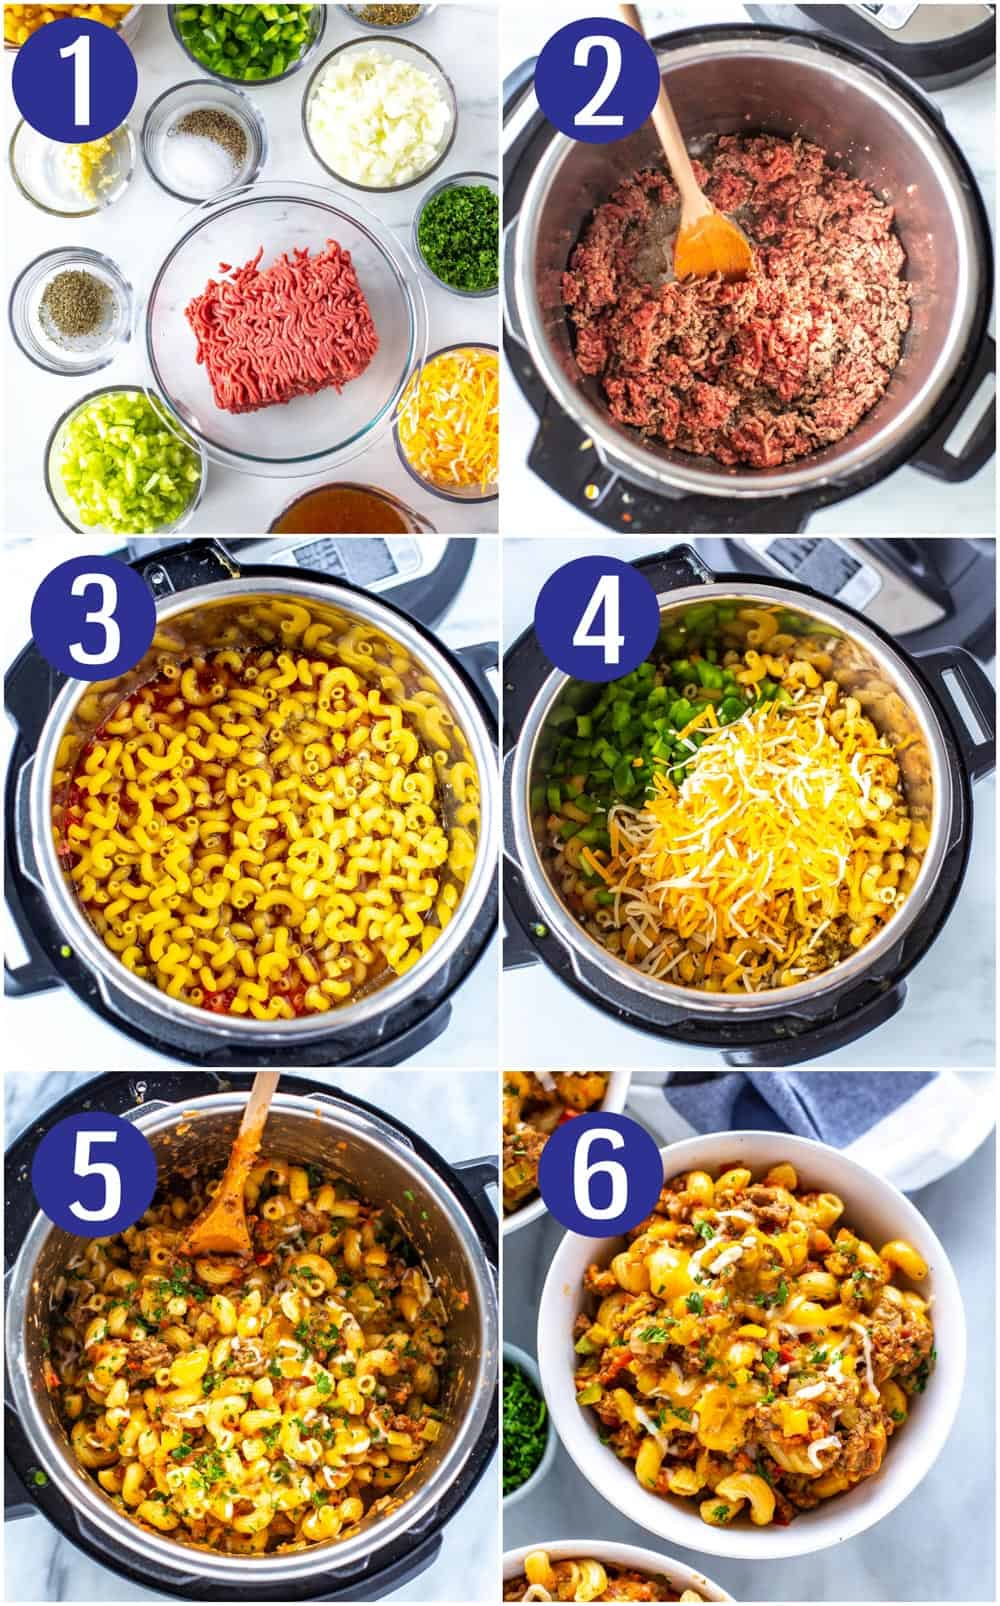 photo collage shows 6 steps to making homemade hamburger helper recipe in an Instant Pot